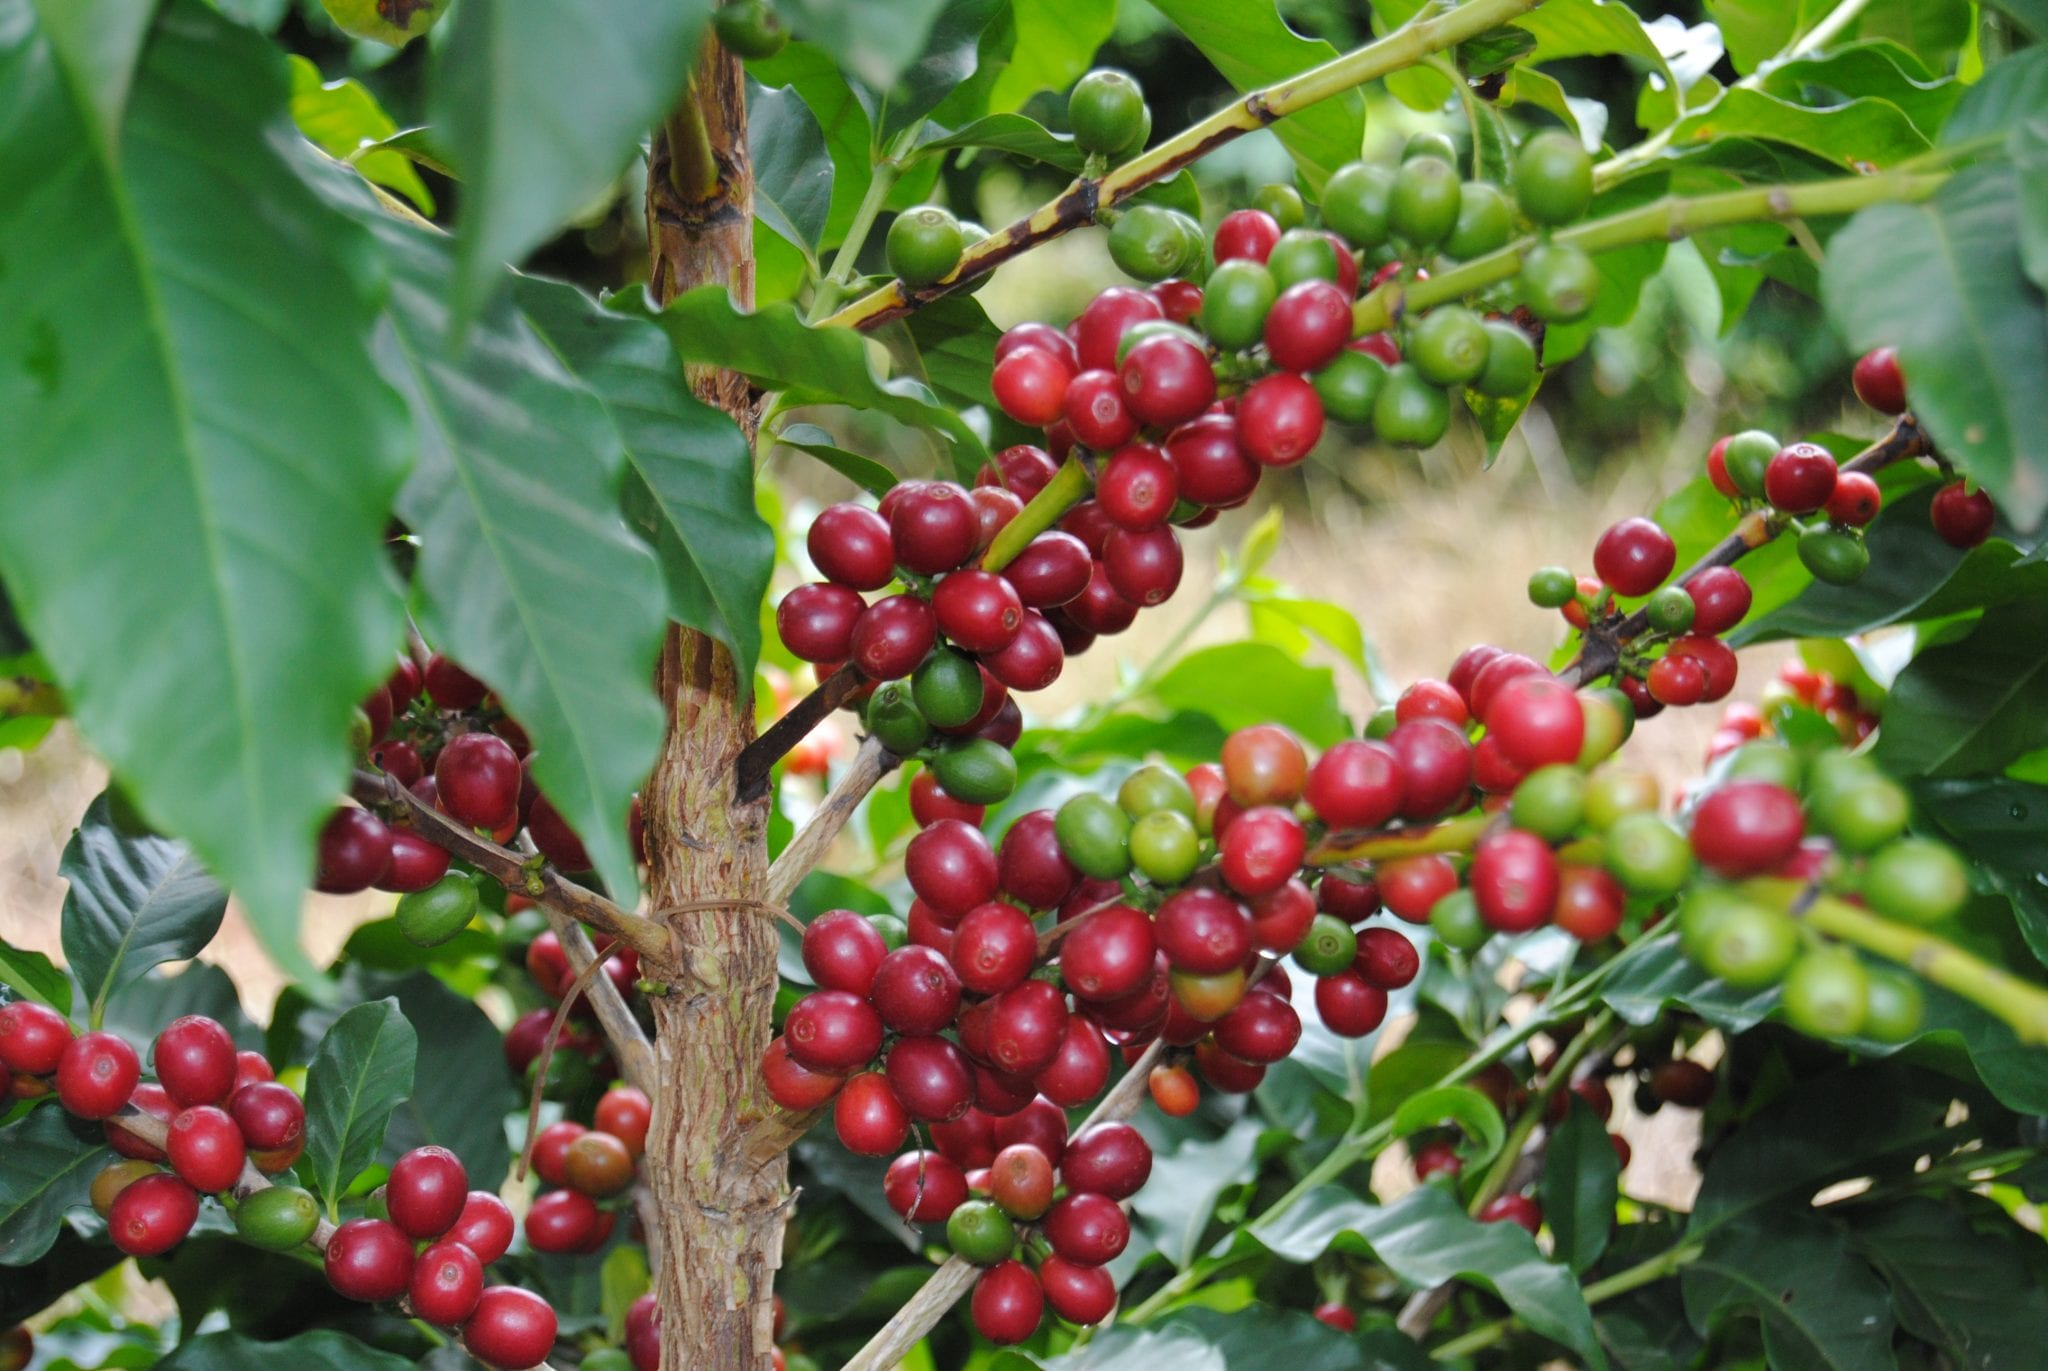 coffee producers sorting riped coffee cherries for quality control